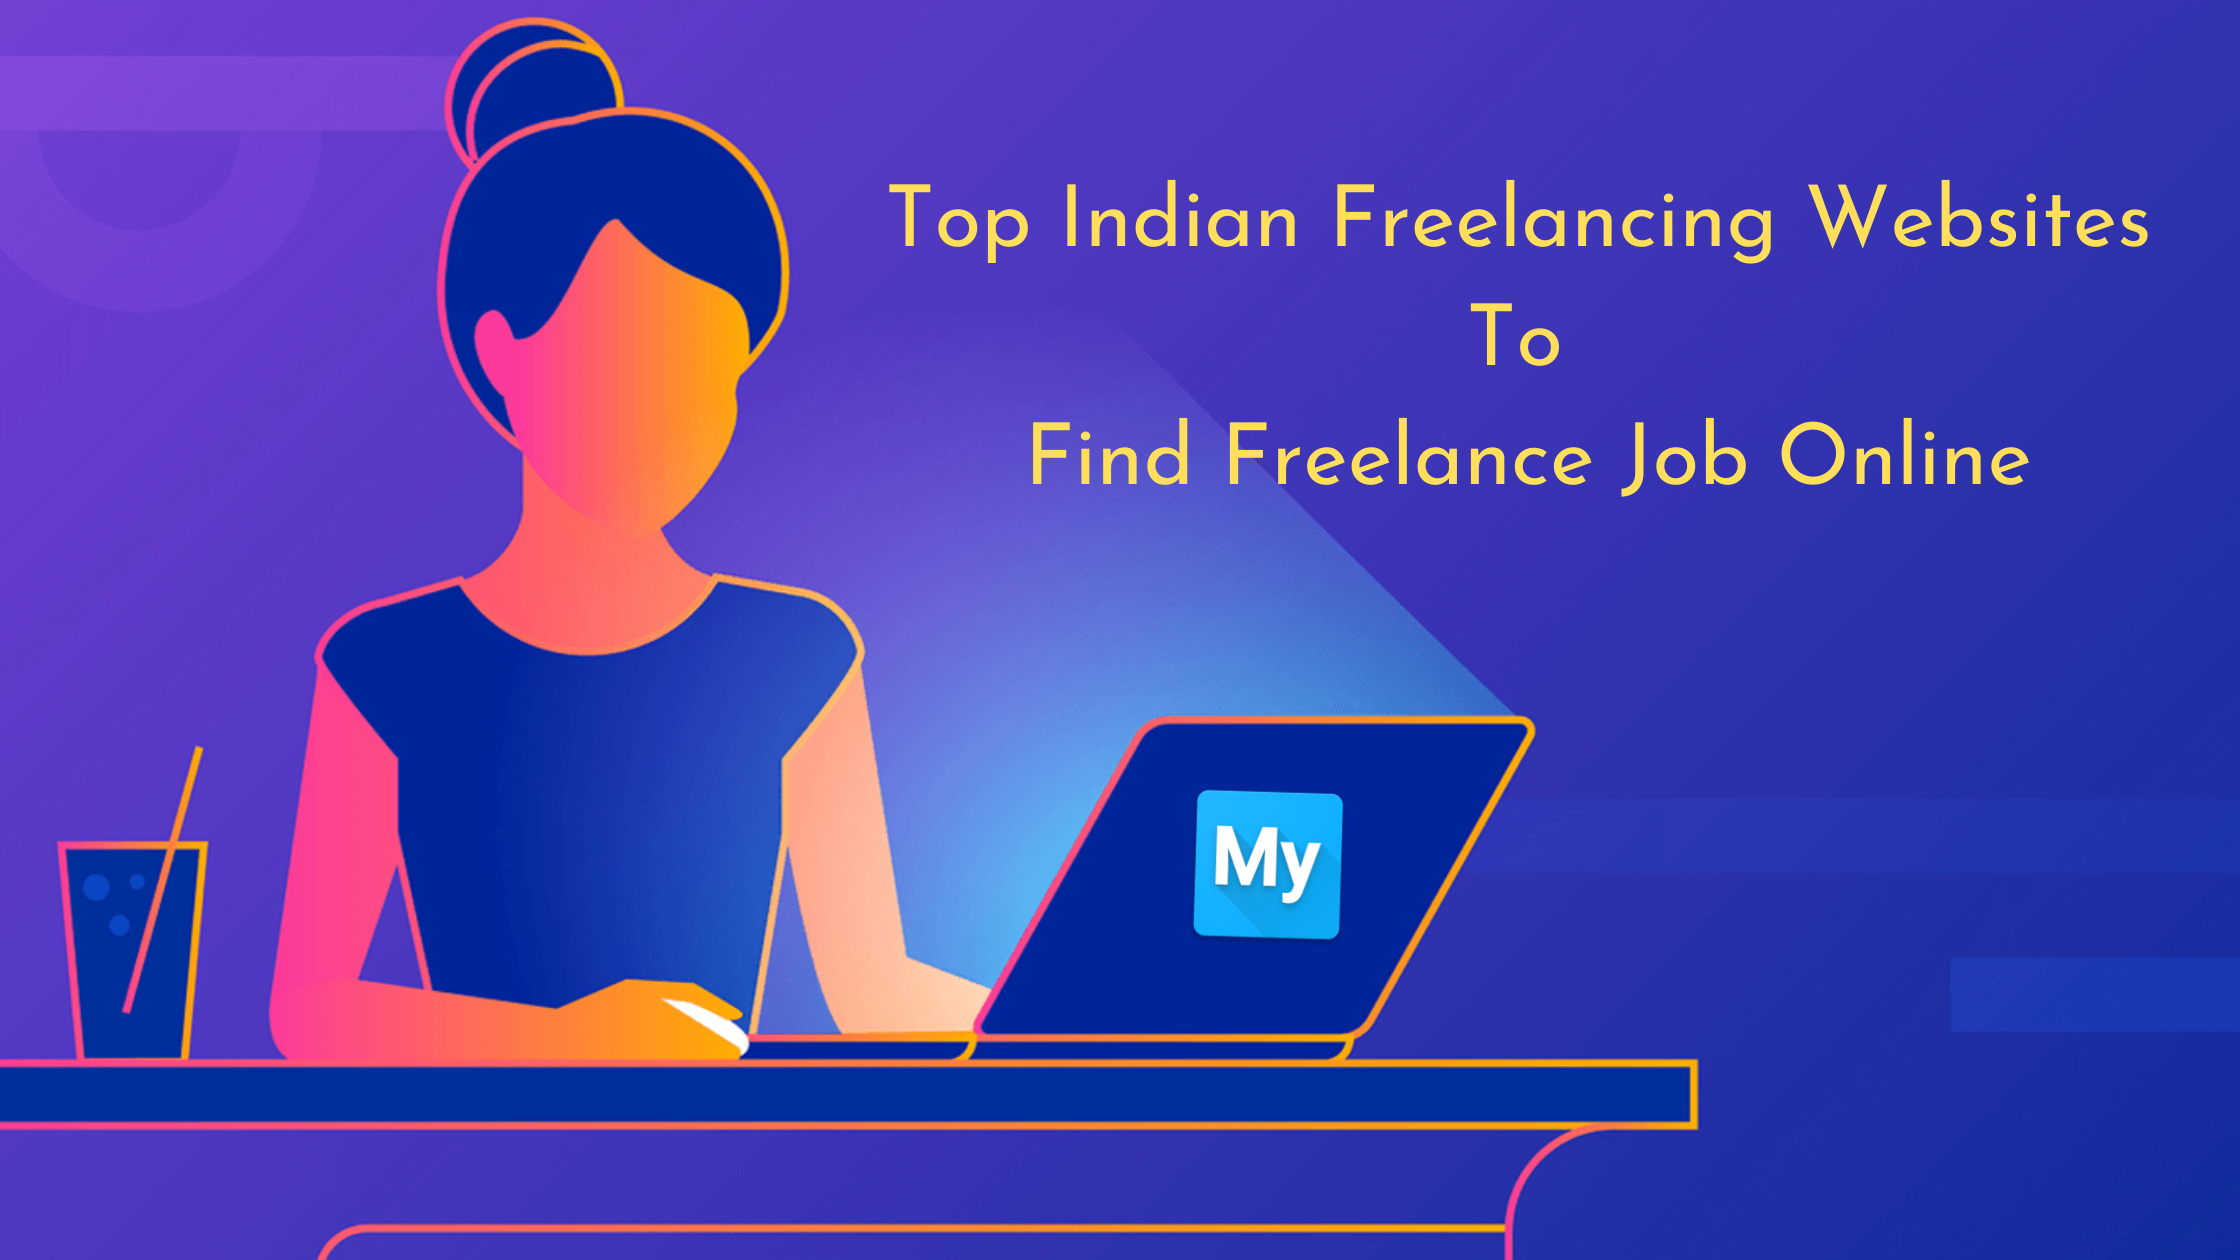 Top Indian Freelancing Websites To Find Freelance Job Online In 2020 Freelancing Jobs Online Jobs Freelancer Website